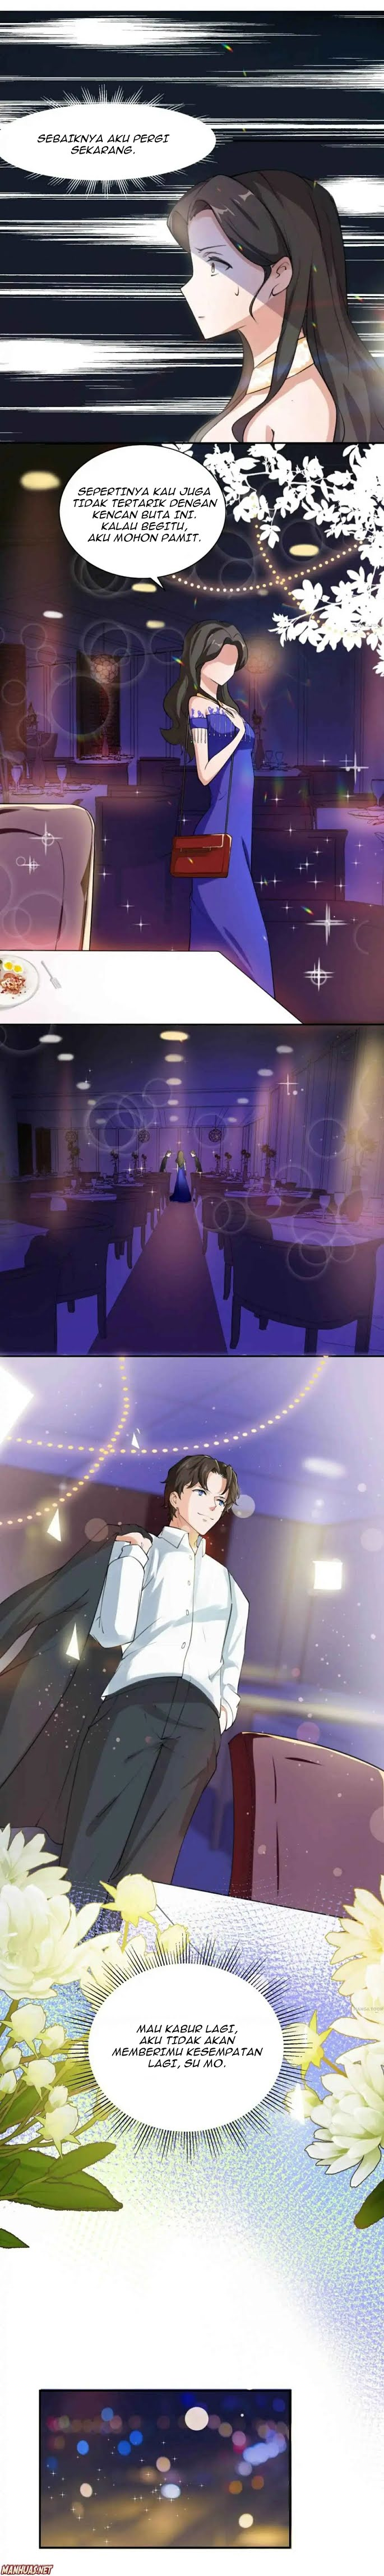 Spoiler Manhua Marry to Find Love 1